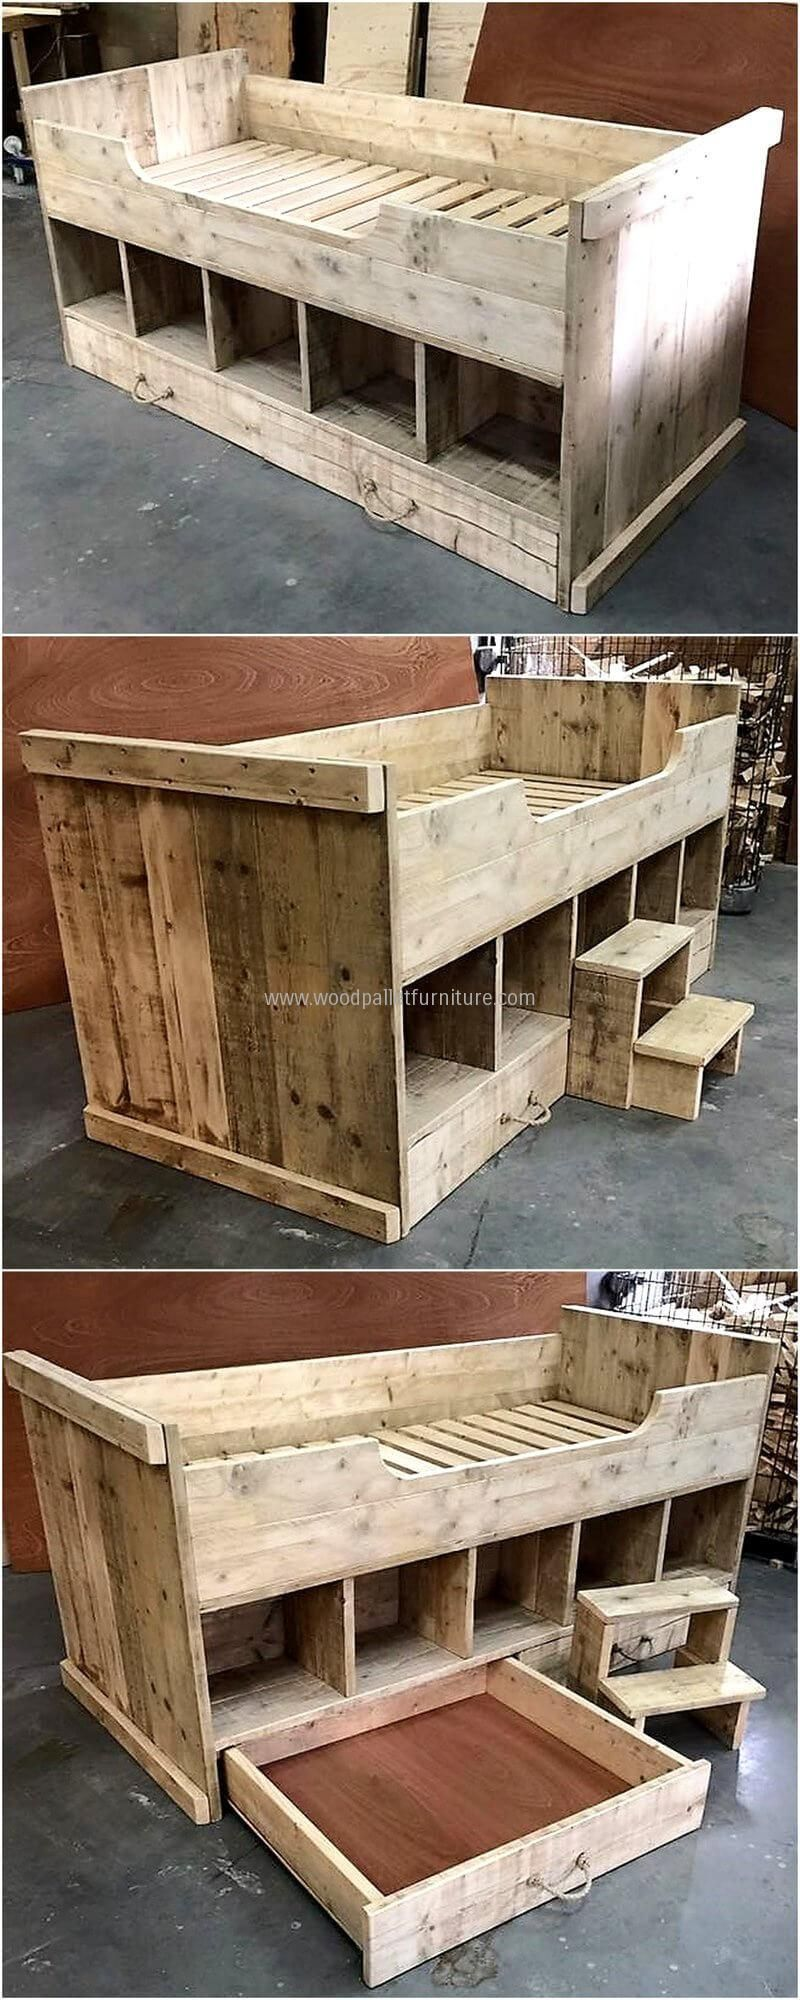 furniture ideas with pallets. Wooden Pallets Kids Bed Idea Furniture Ideas With A